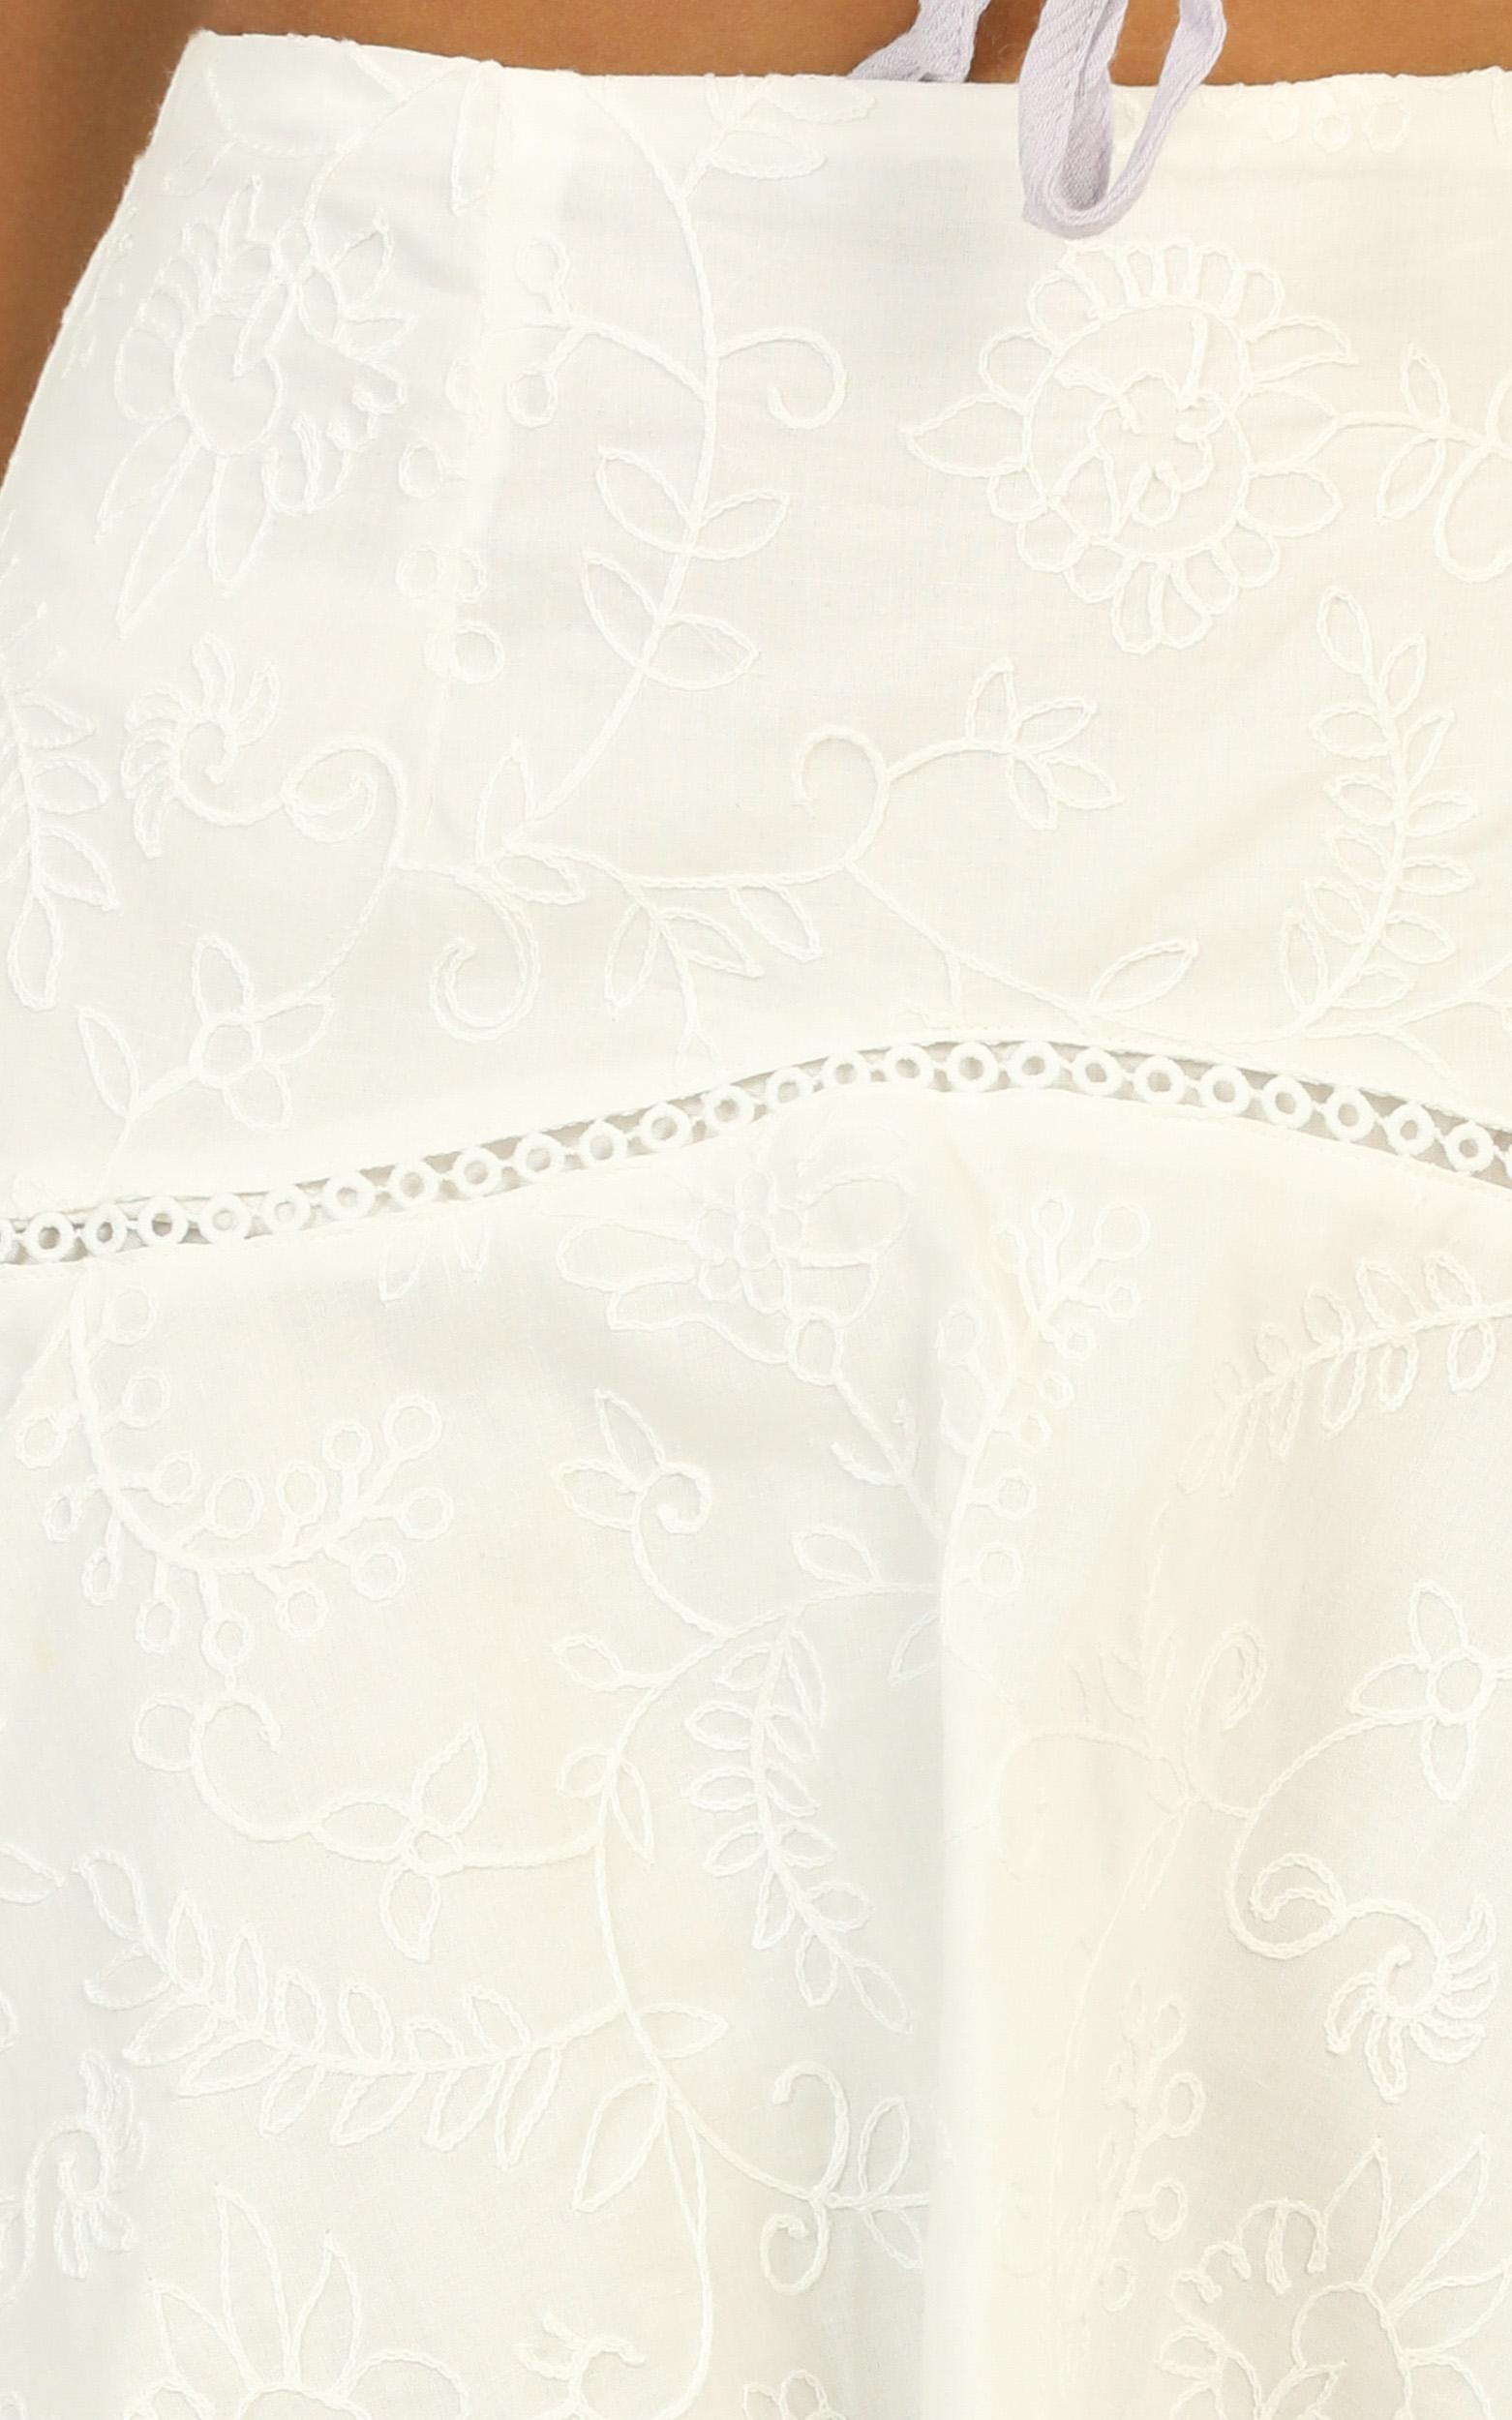 A Little Different skirt in white - 16 (XXL), White, hi-res image number null